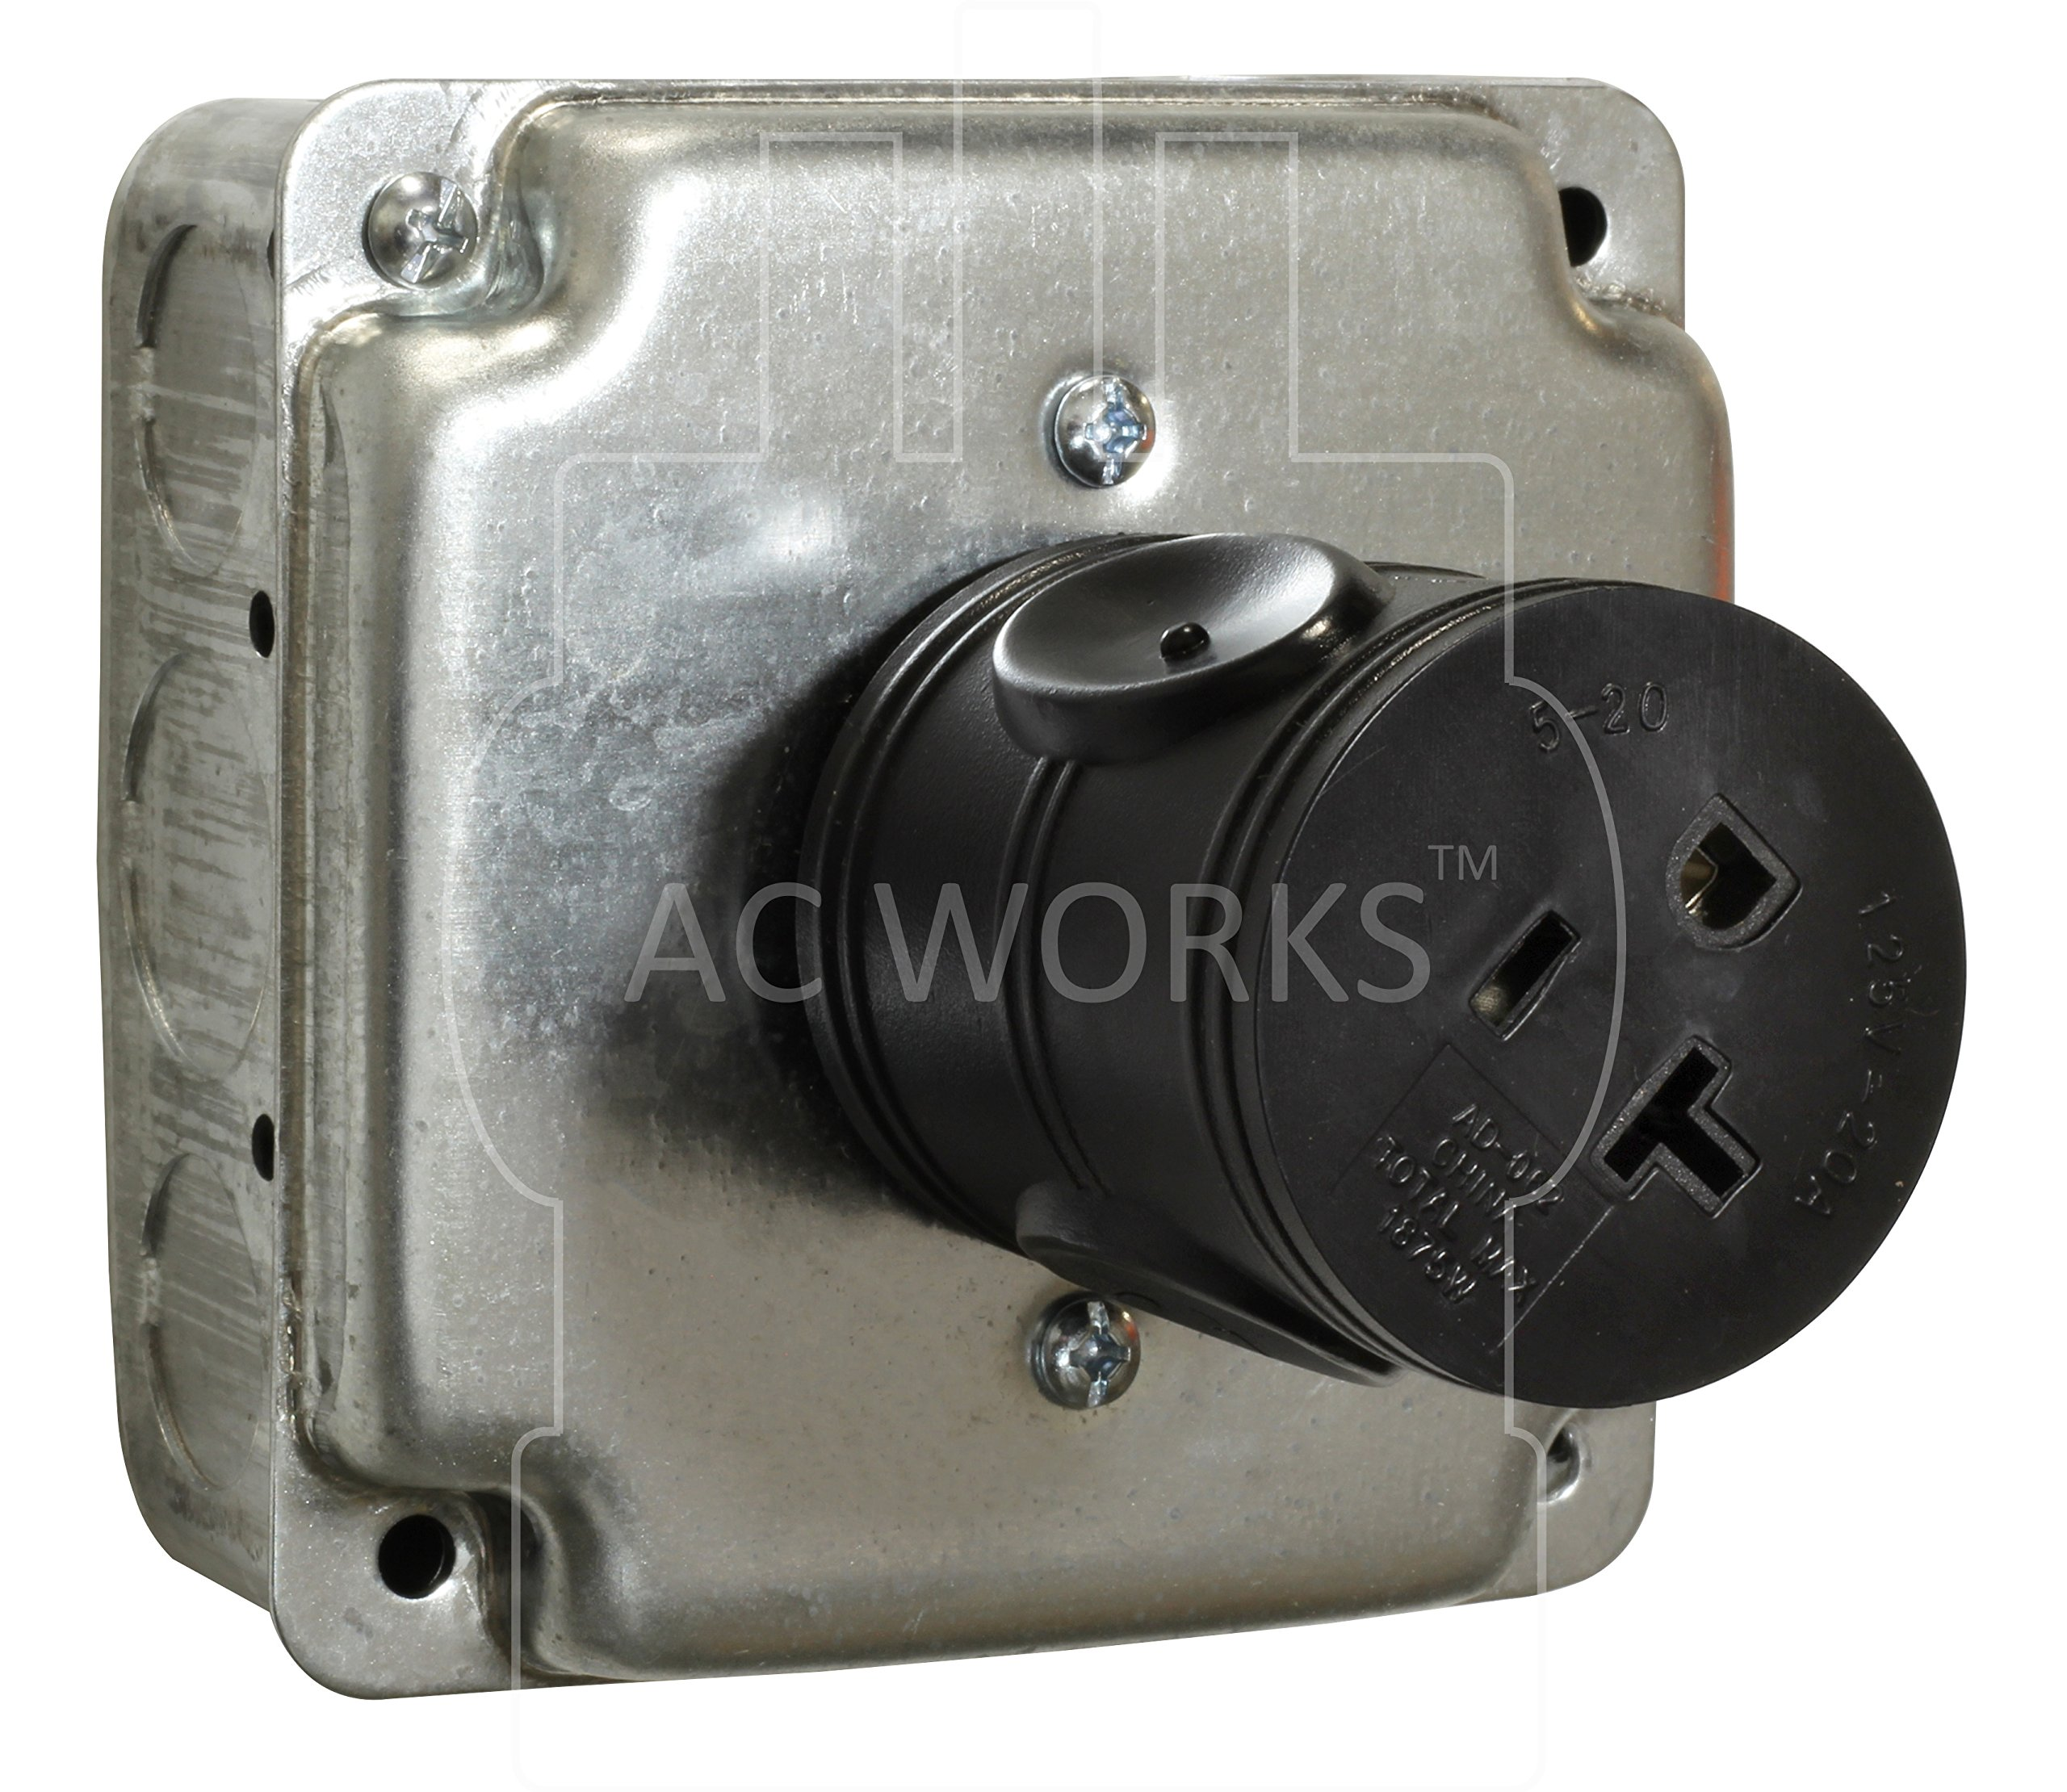 AC WORKS [ADL515520] Locking Adapter NEMA L5-15P 15Amp Locking Plug to Househole 15/20Amp Connector by AC WORKS (Image #4)